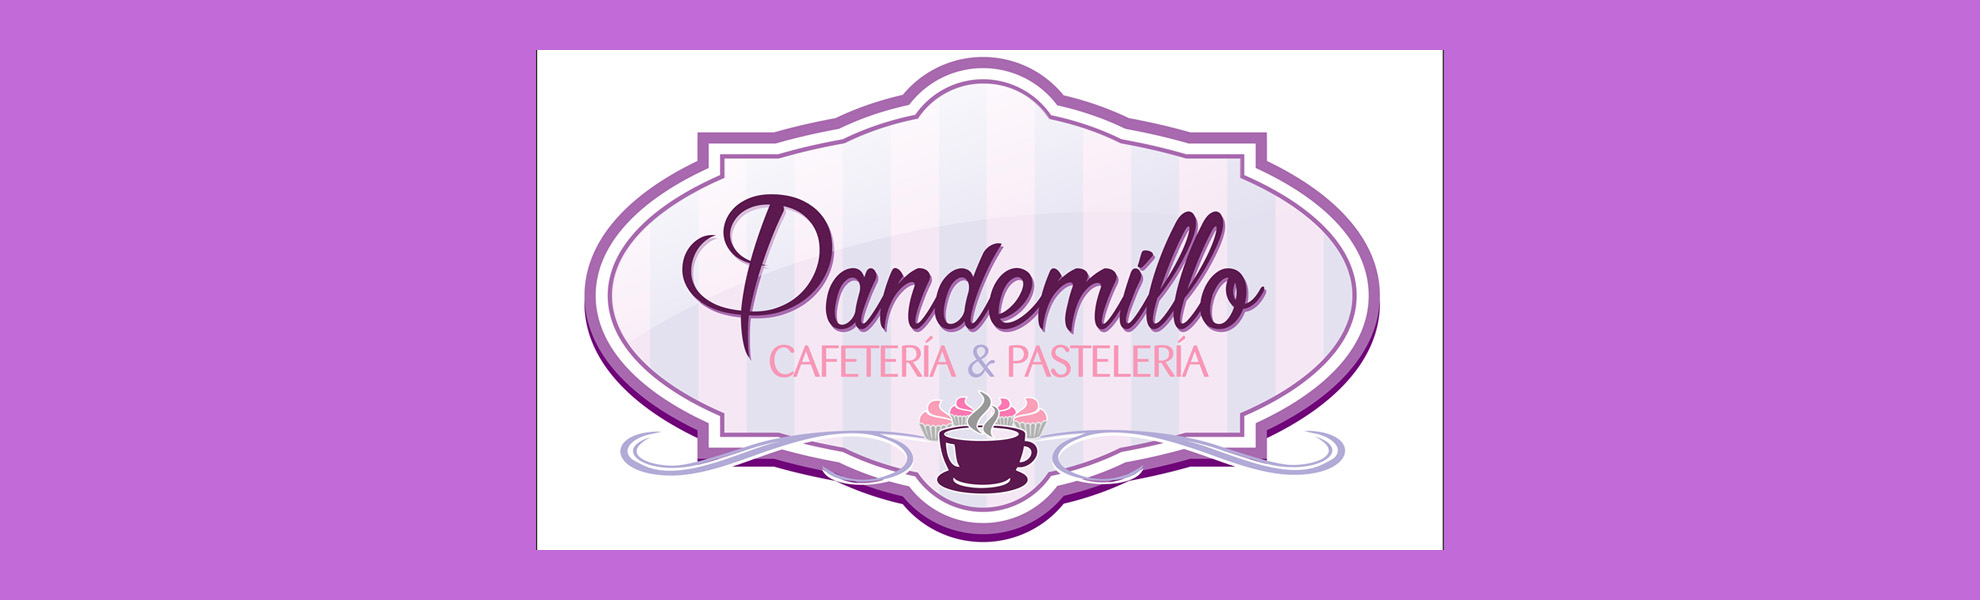 banner-PANDEMILLO